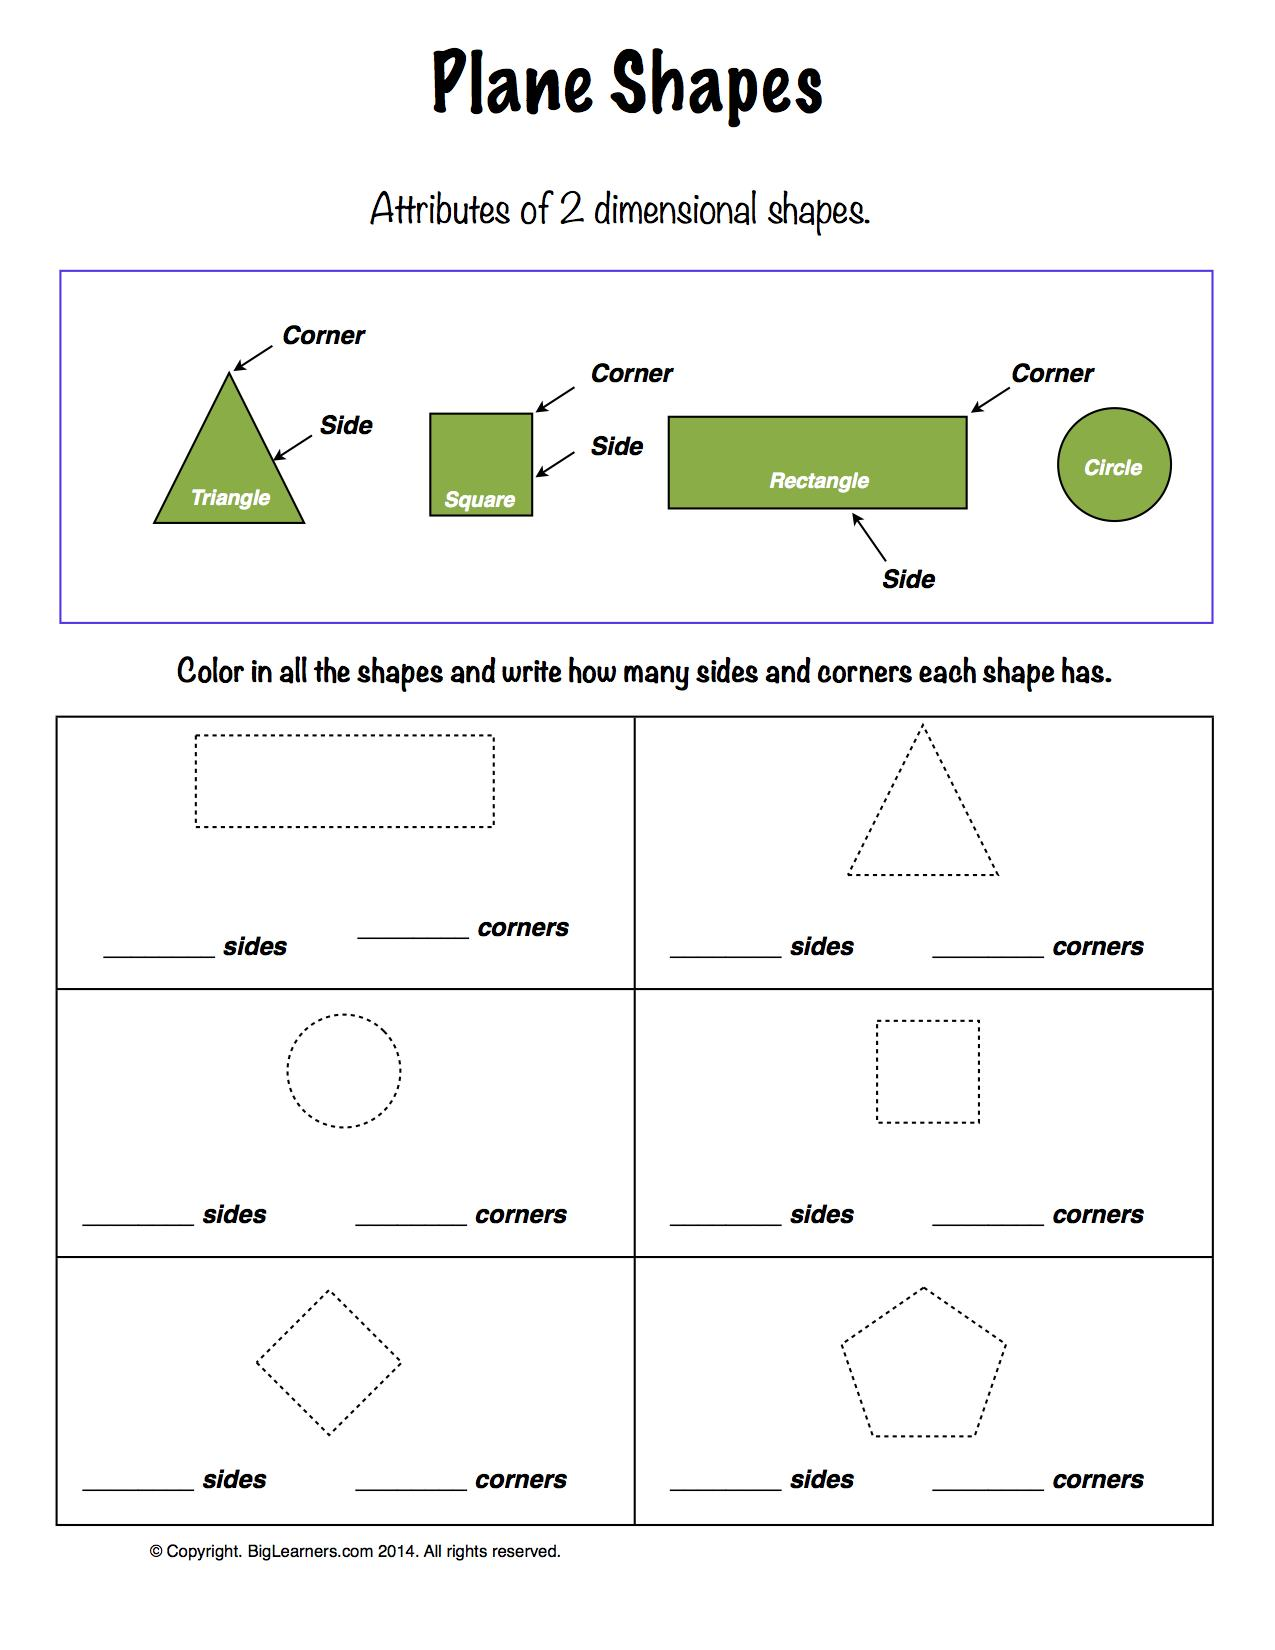 composing shapes kindergarten worksheets kindergarten shapes worksheets free printables. Black Bedroom Furniture Sets. Home Design Ideas